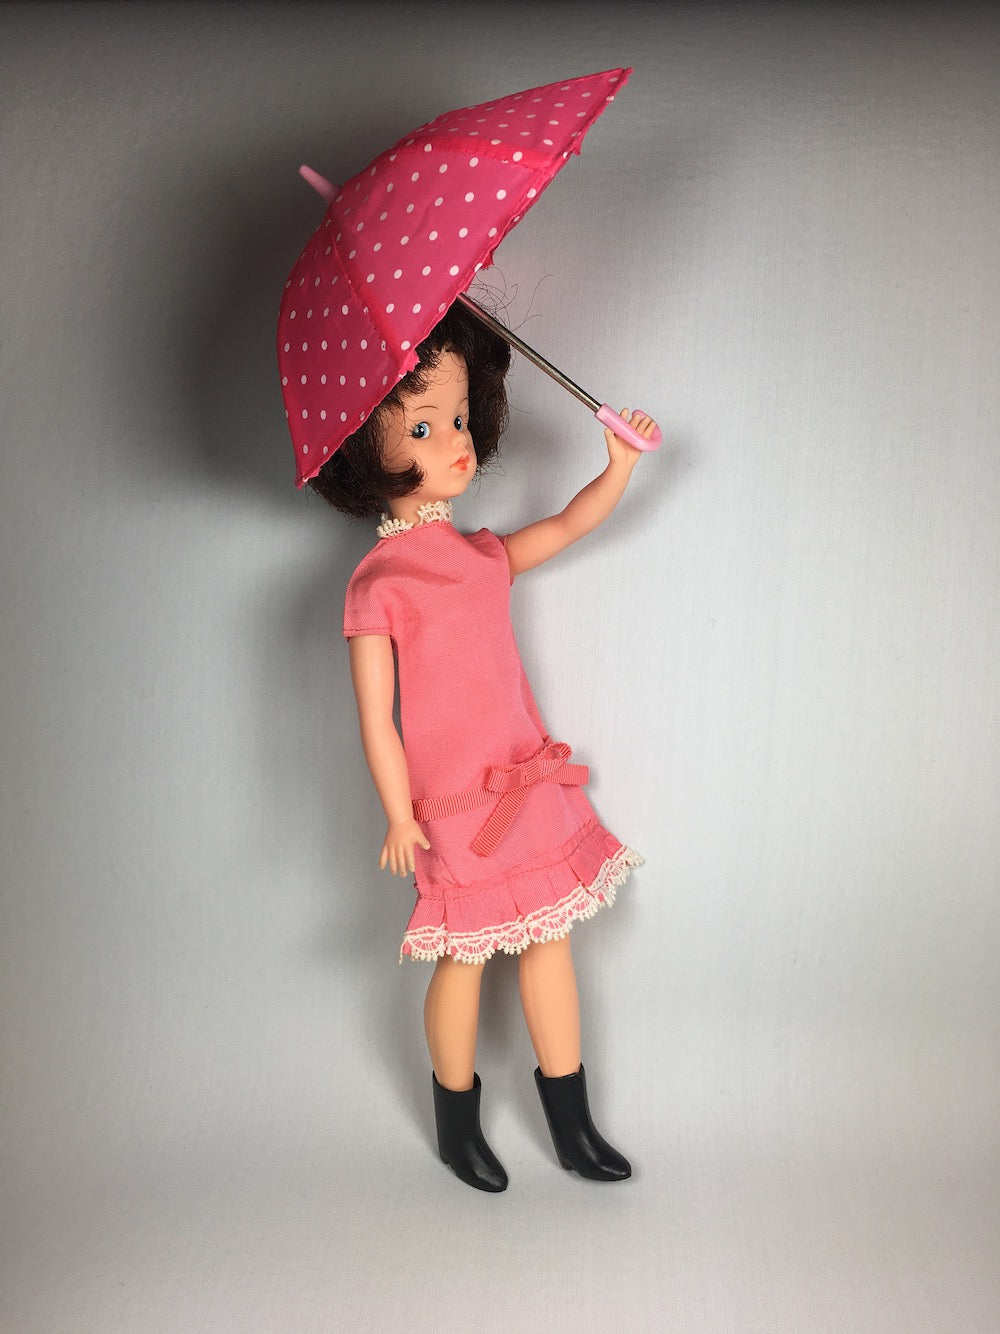 Sindy in Dream Date 1963 with a pink polka dot umbrella